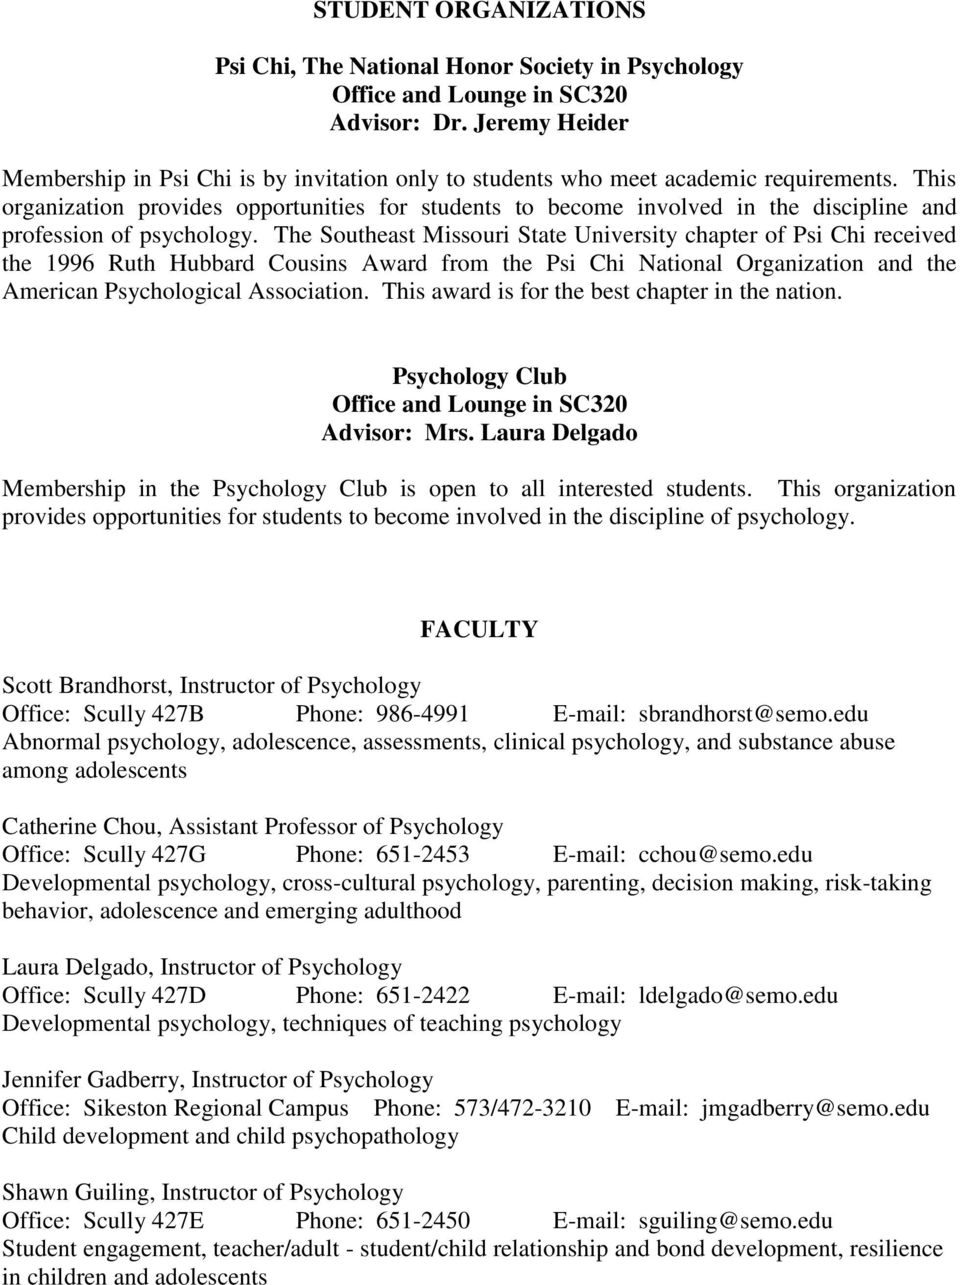 This organization provides opportunities for students to become involved in the discipline and profession of psychology.